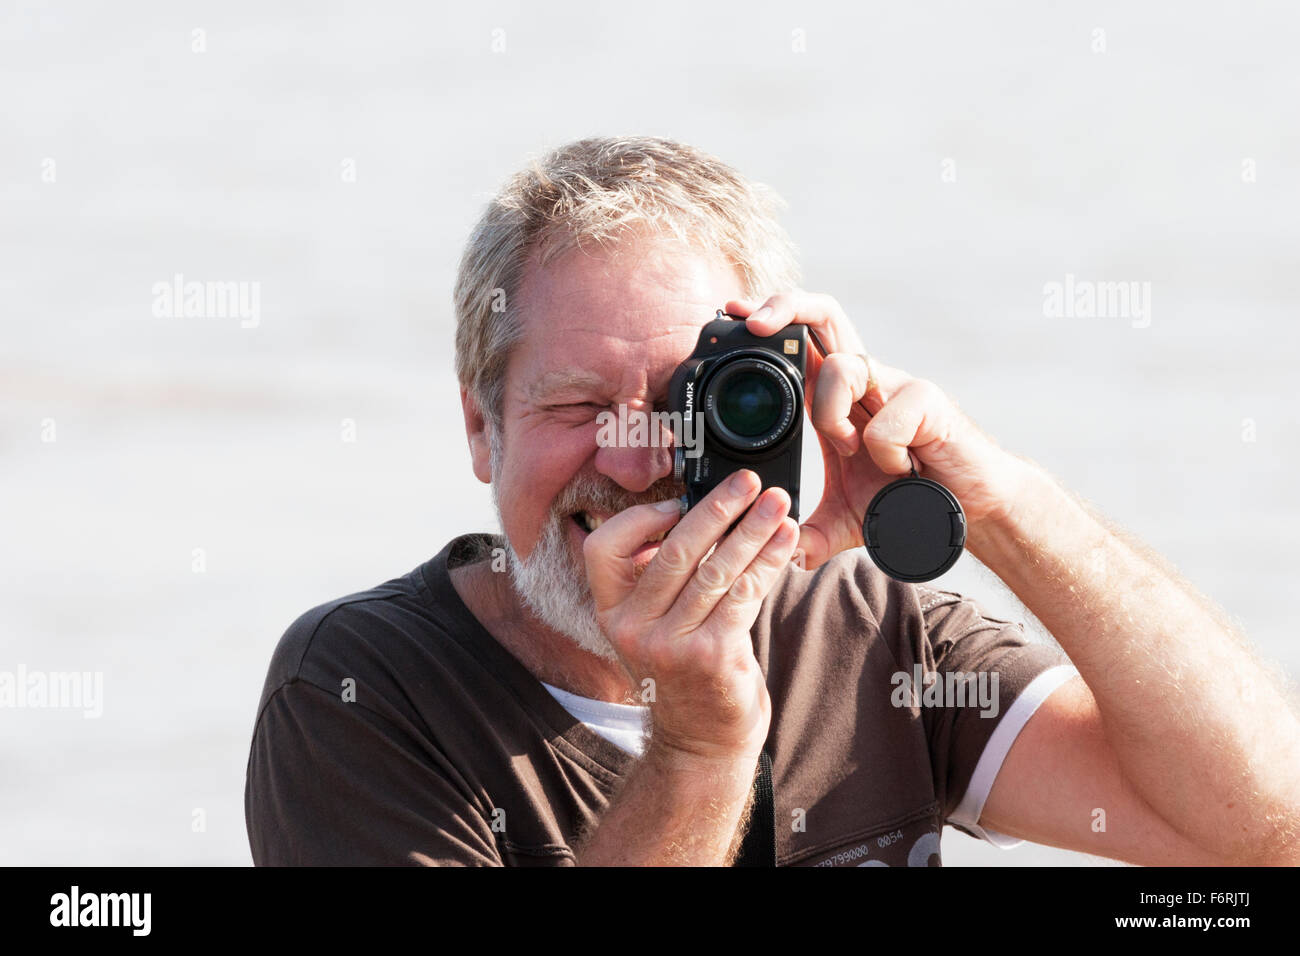 Man taking photo photograph with camera Lumix photographing one eye closed concentrating - Stock Image